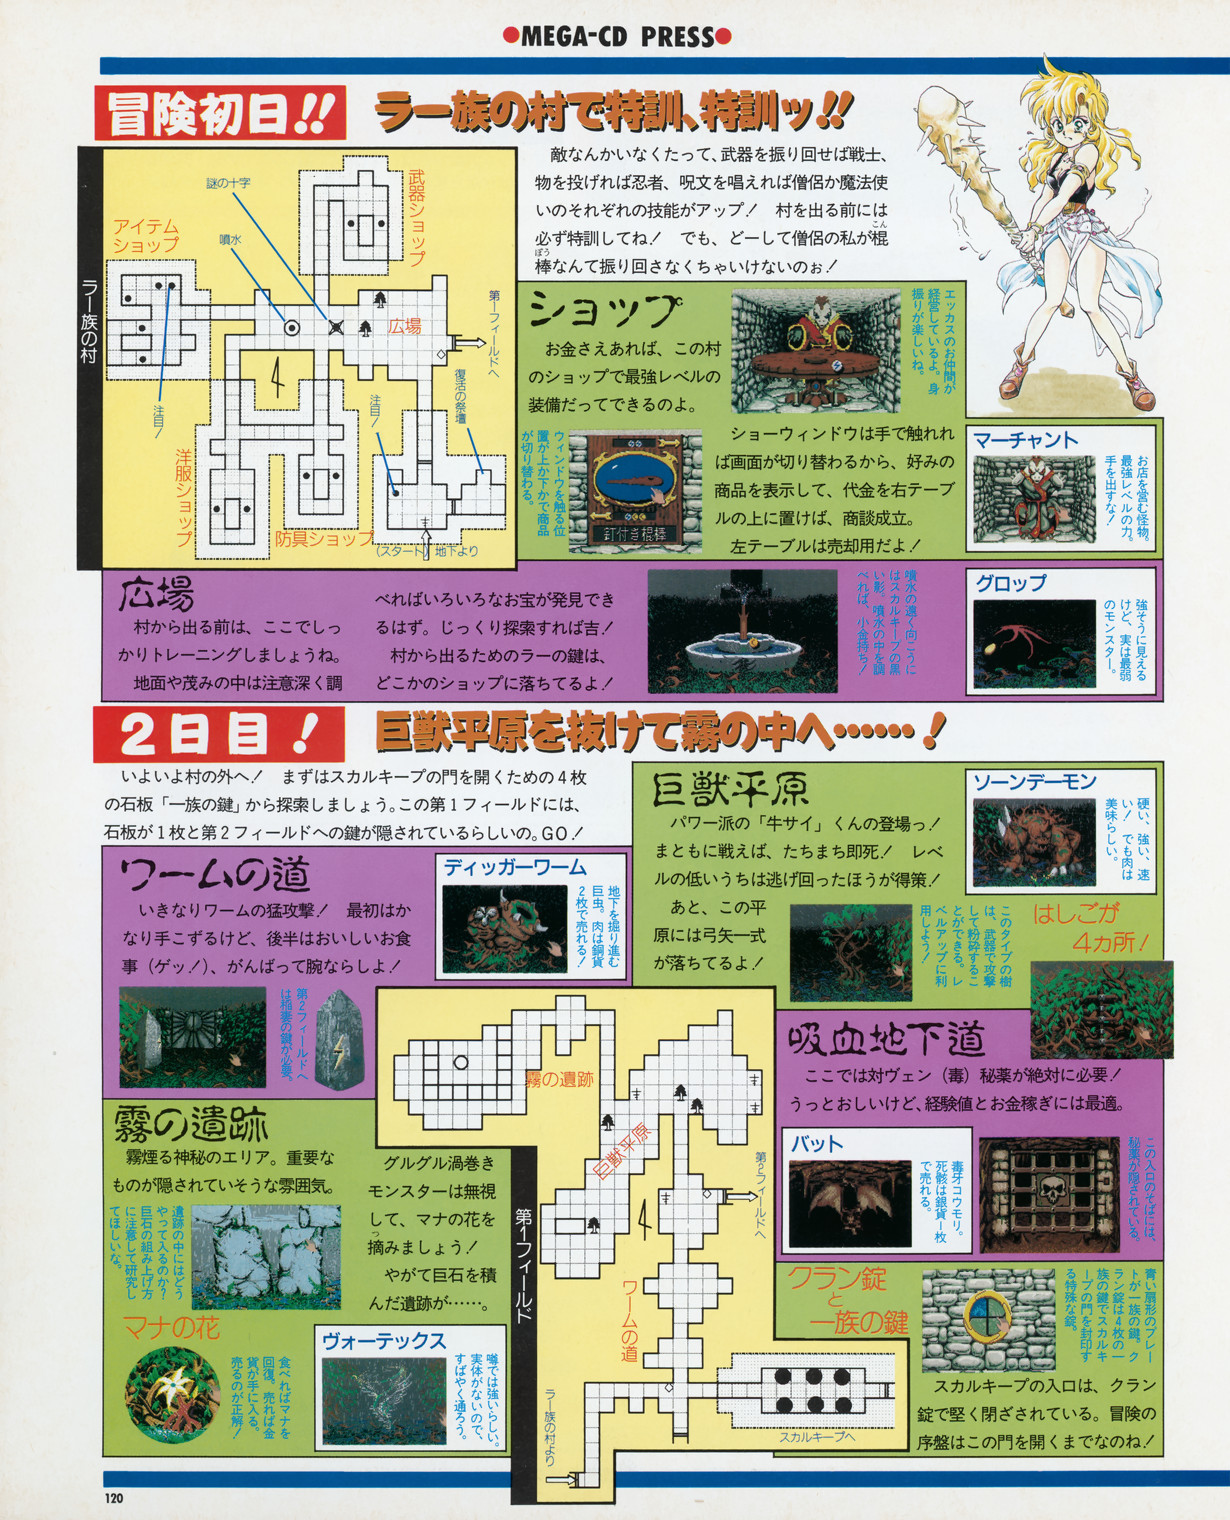 Dungeon Master II for Mega CD Hints published in Japanese magazine 'Beep! MegaDrive', April 1994, Page 120